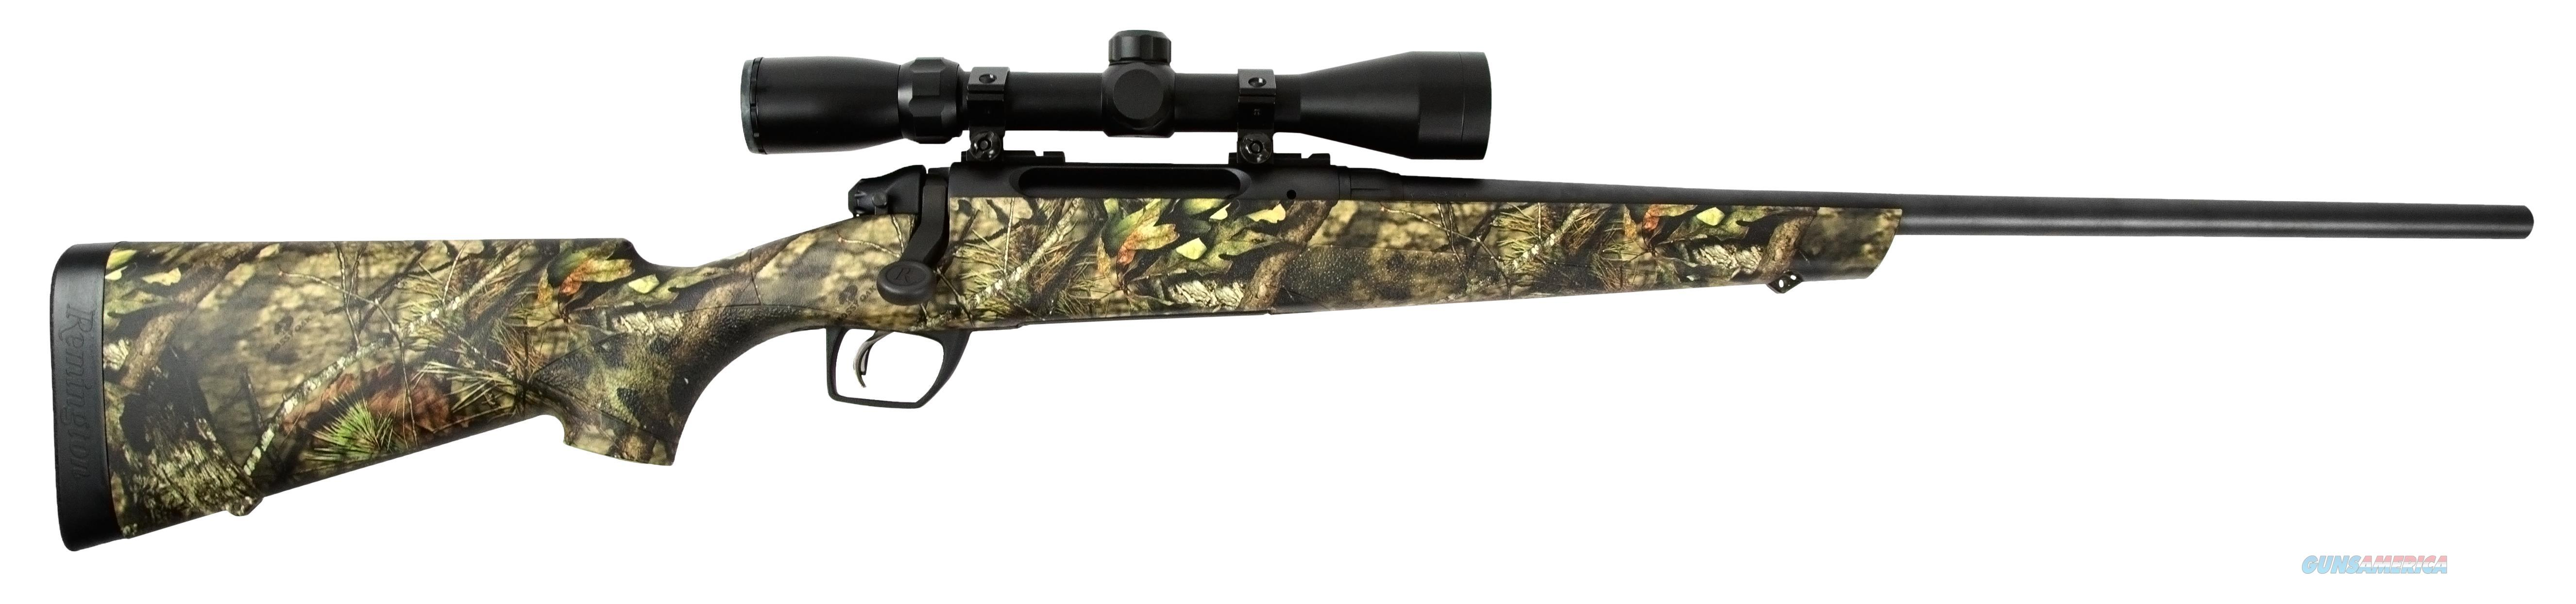 "Remington Firearms 85751 783 With Scope Bolt 243 Winchester 22"" 4+1 Synthetic Mossy Oak Break-Up Country Stk Blued 85751  Guns > Rifles > R Misc Rifles"